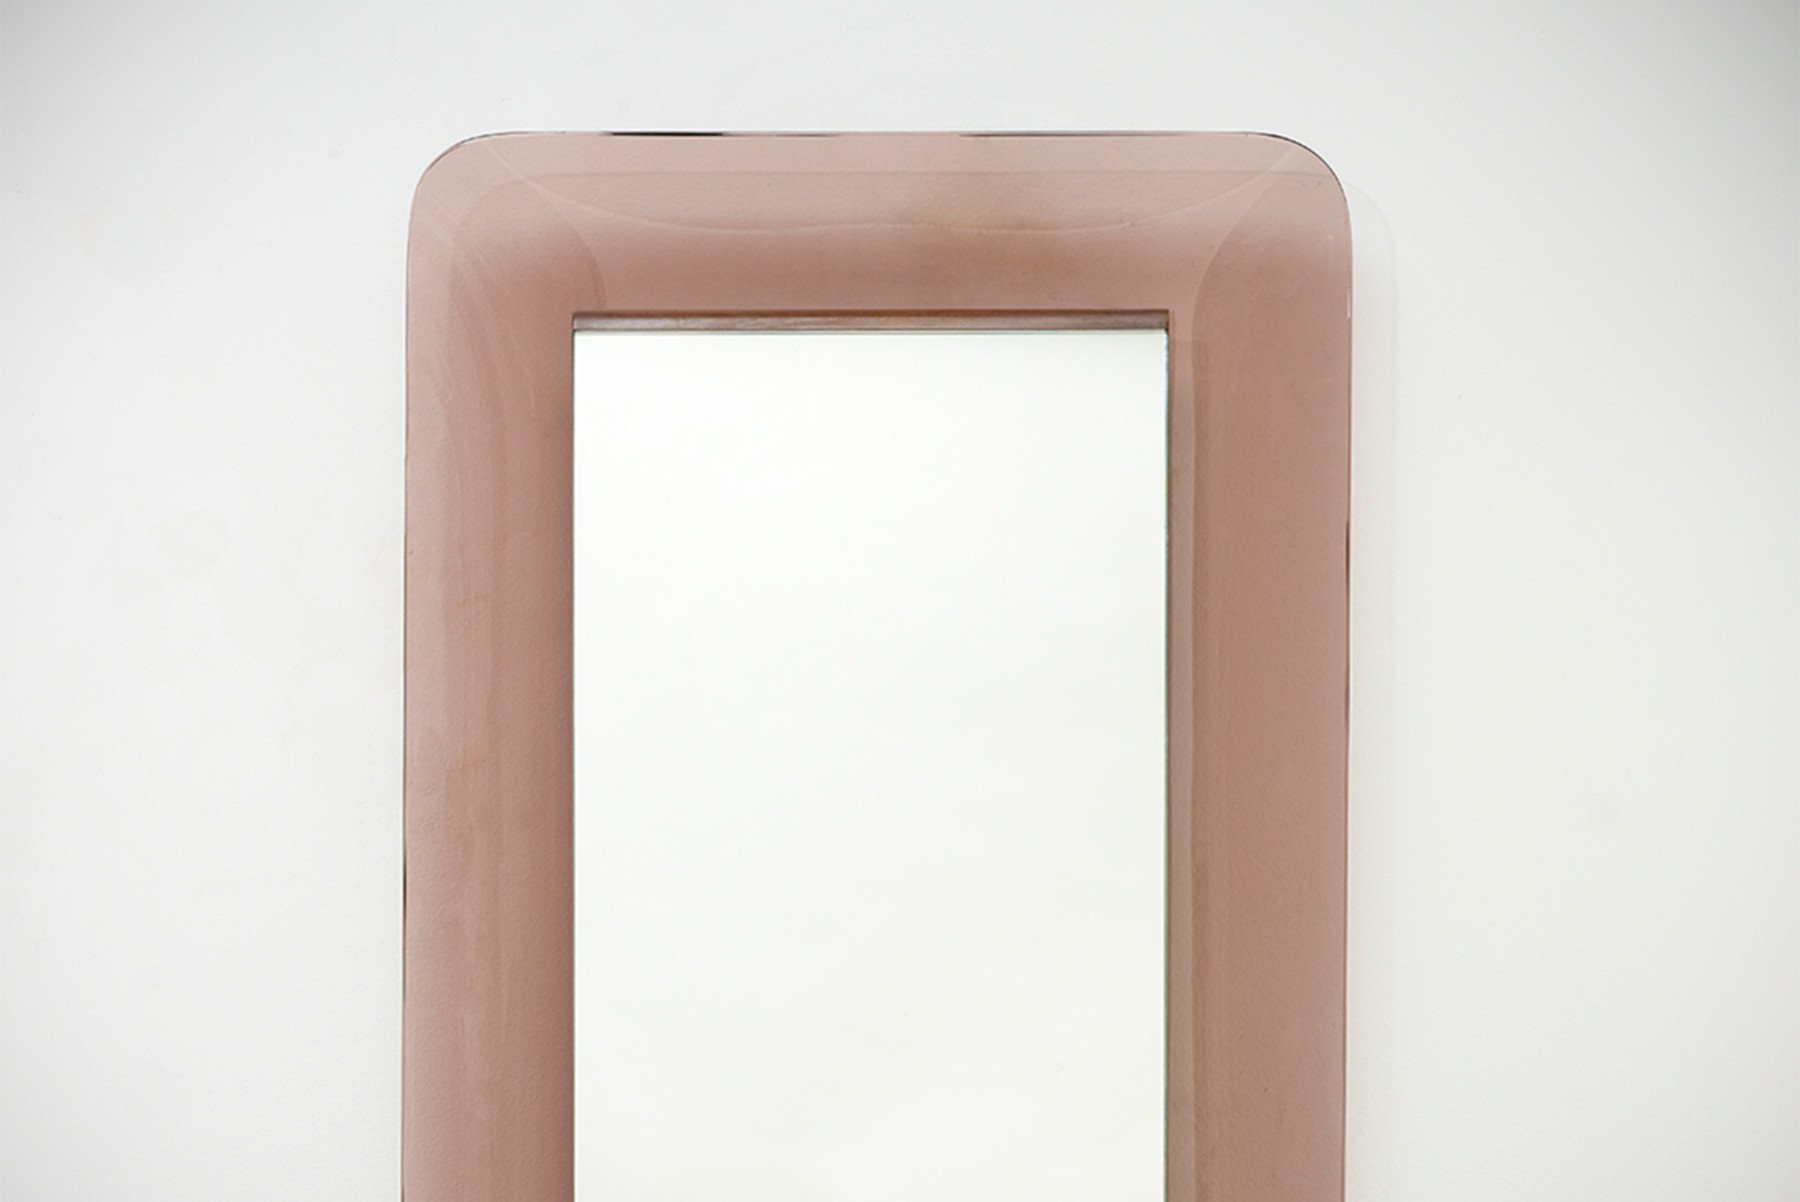 Max Ingrand |   Mirror, model 2273